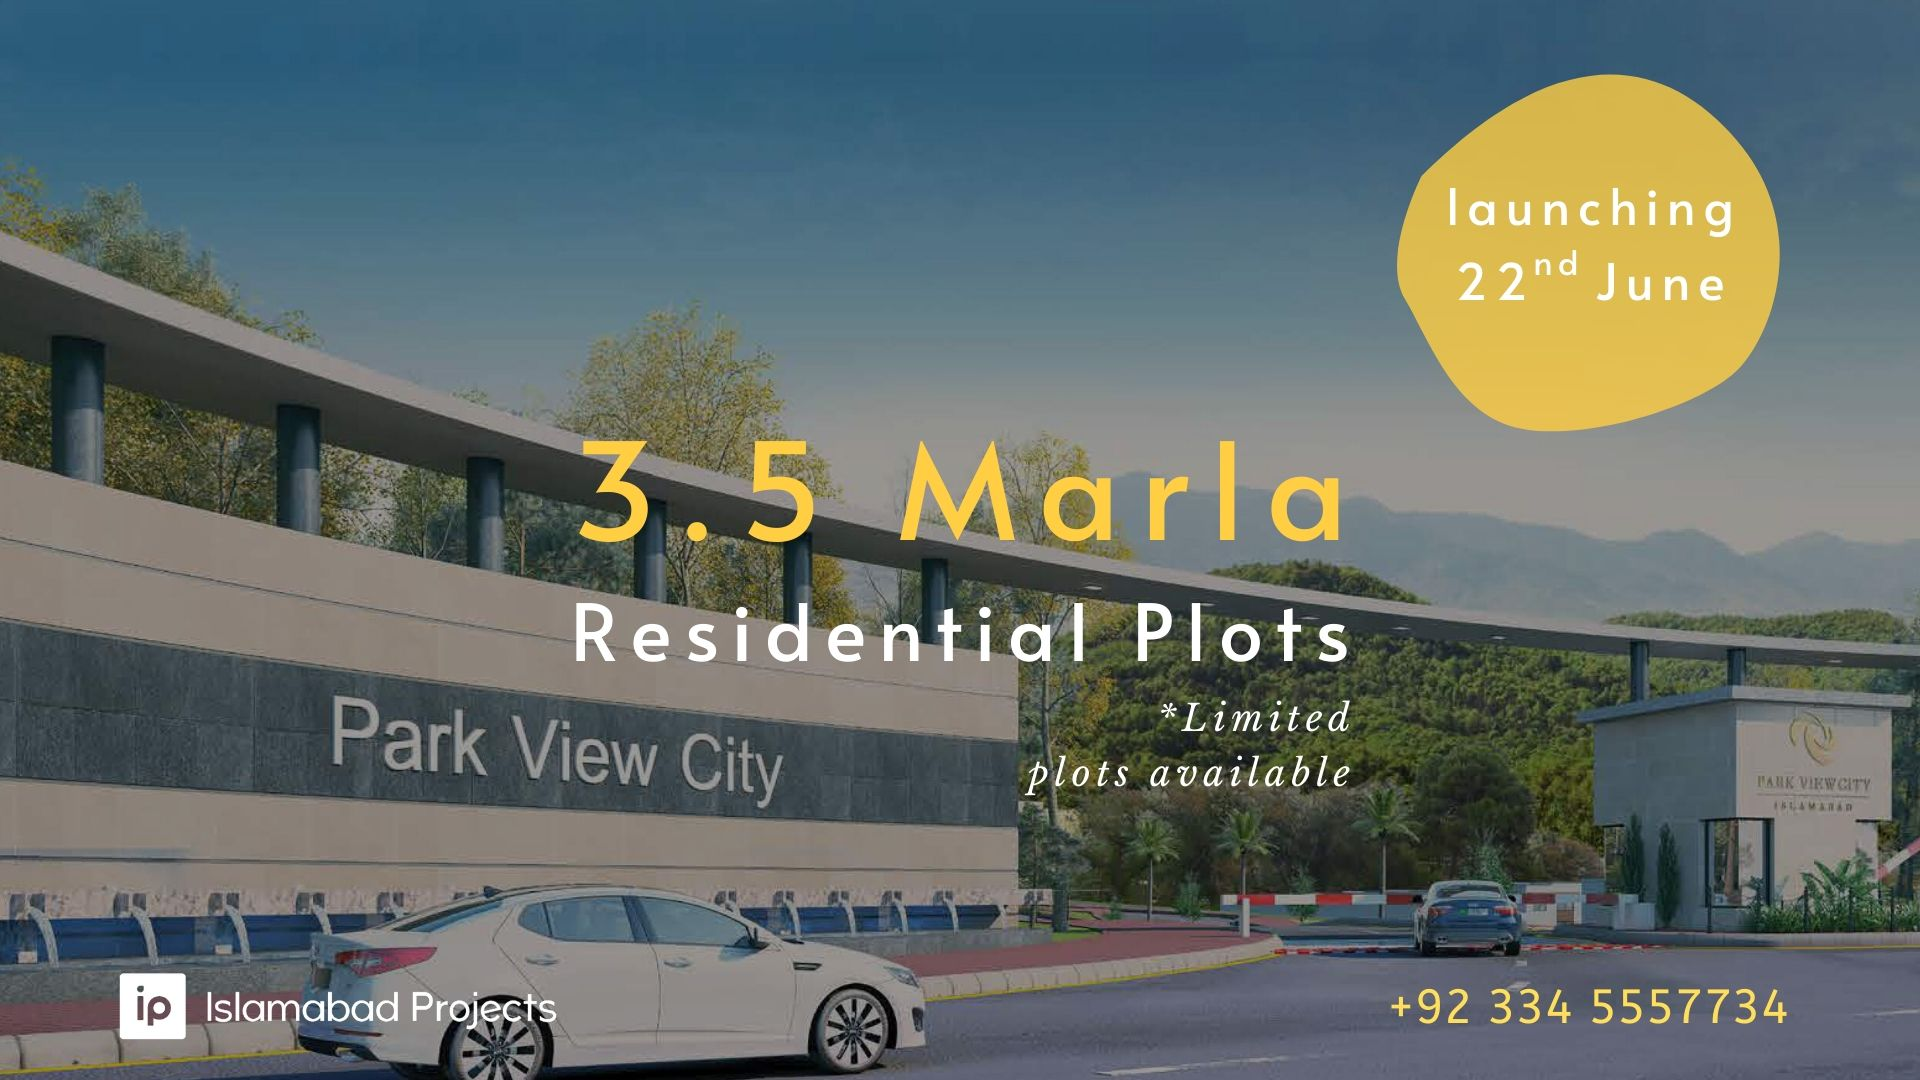 park view city has launched 3.5 marla residential plot